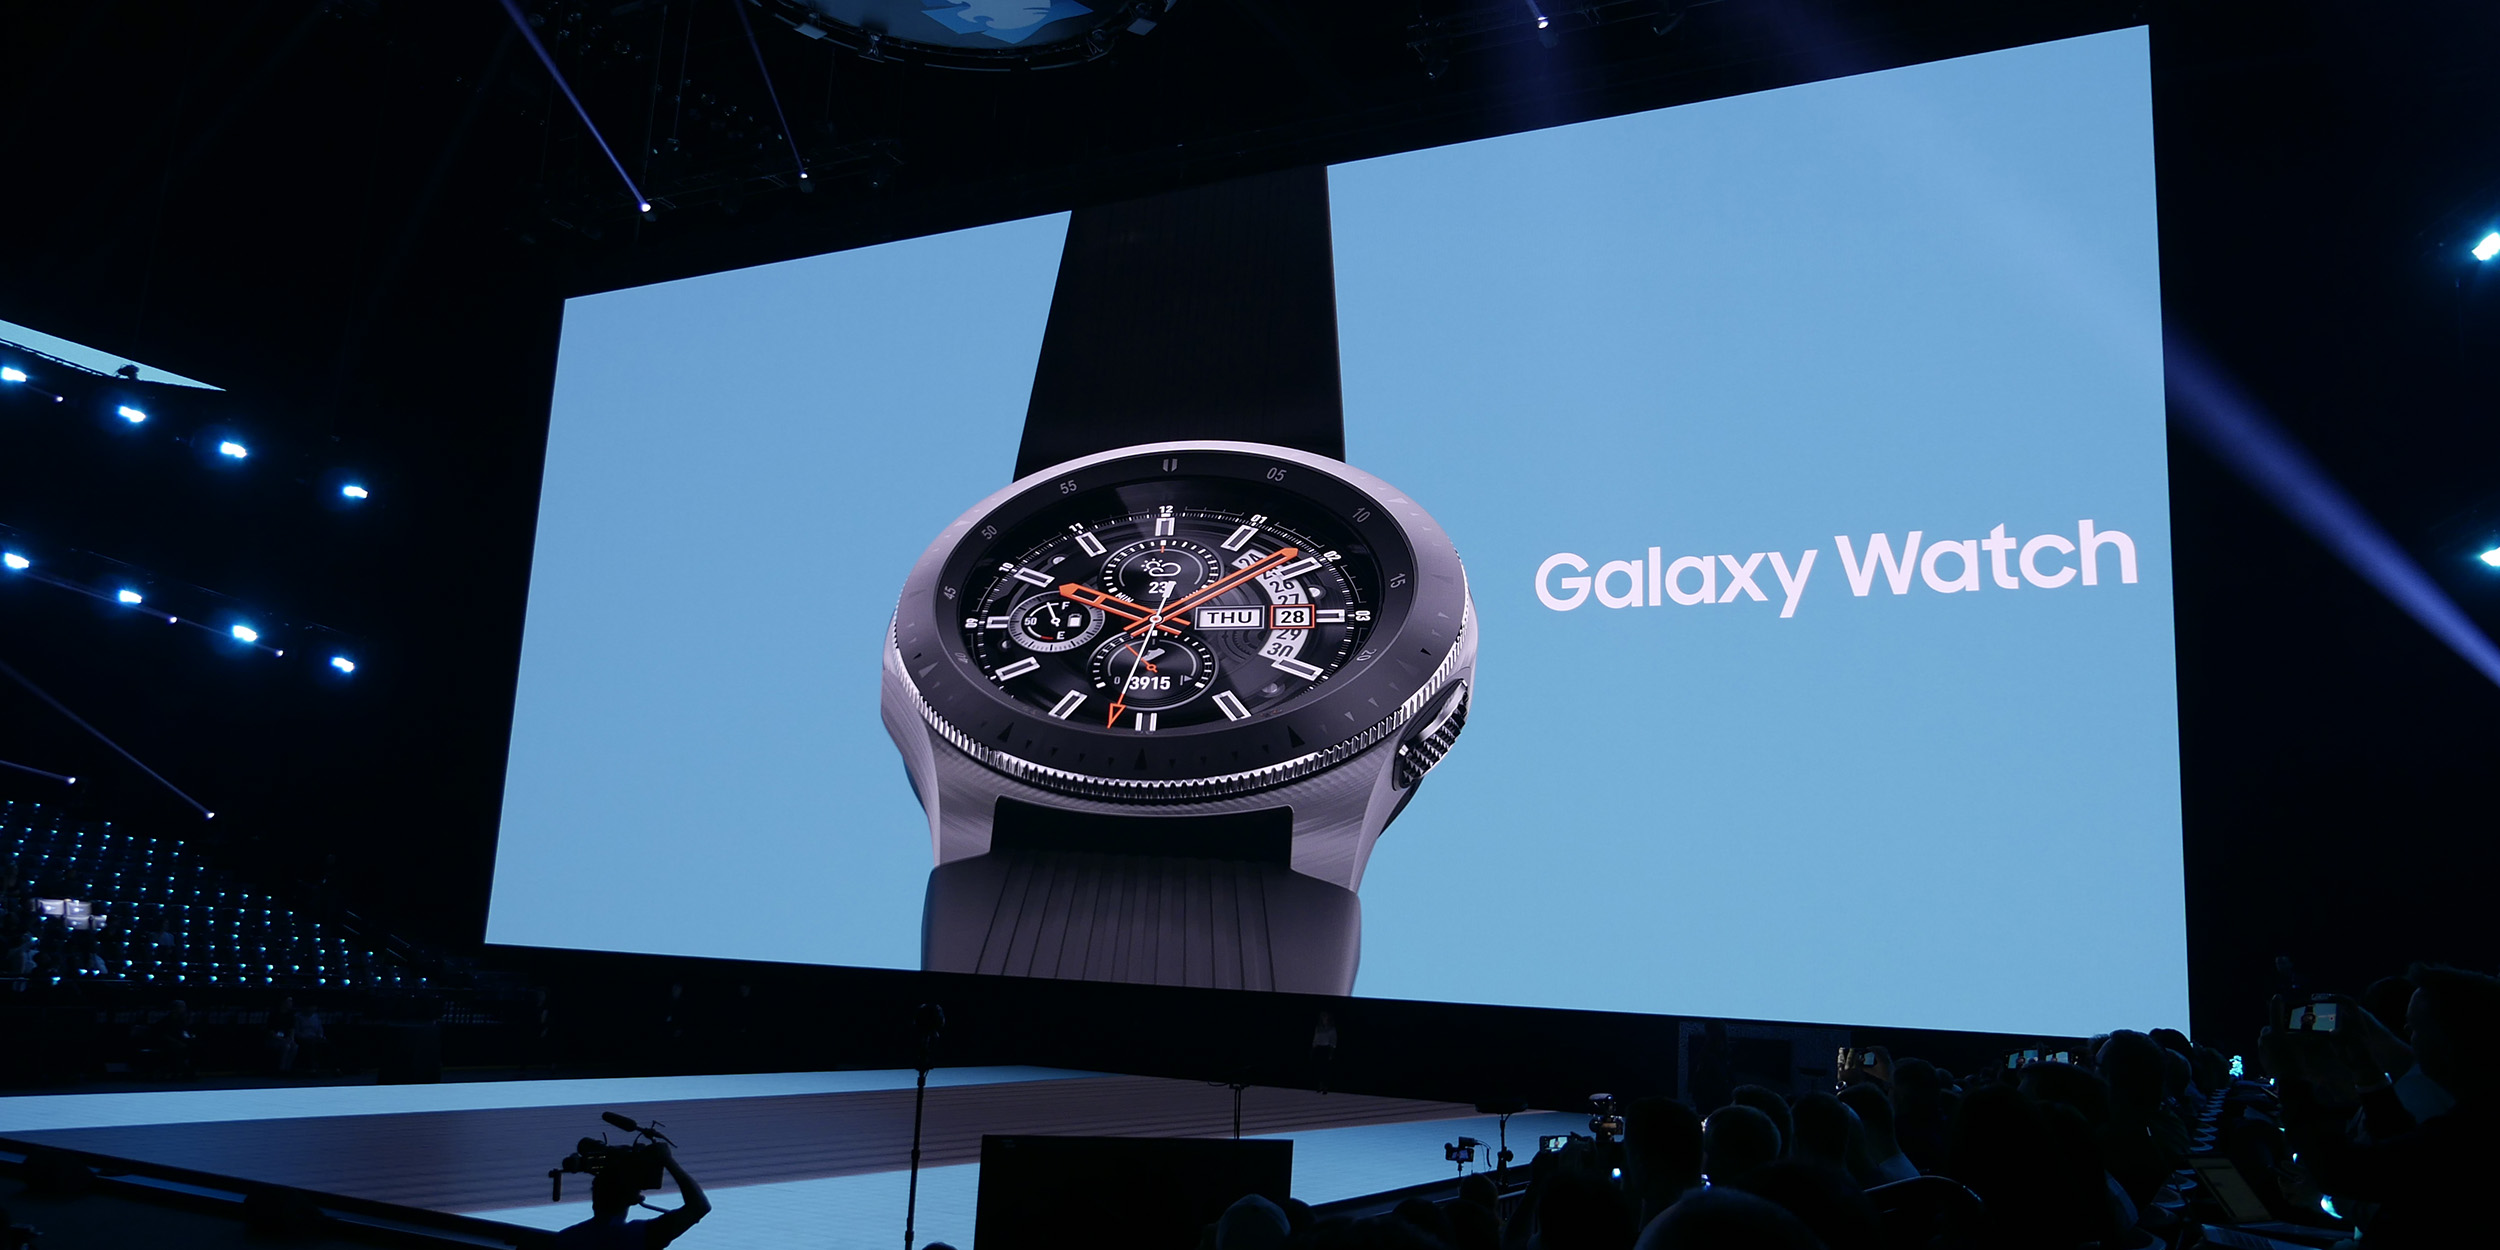 Samsung Galaxy Watch goes official w/ 6-day battery life, LTE